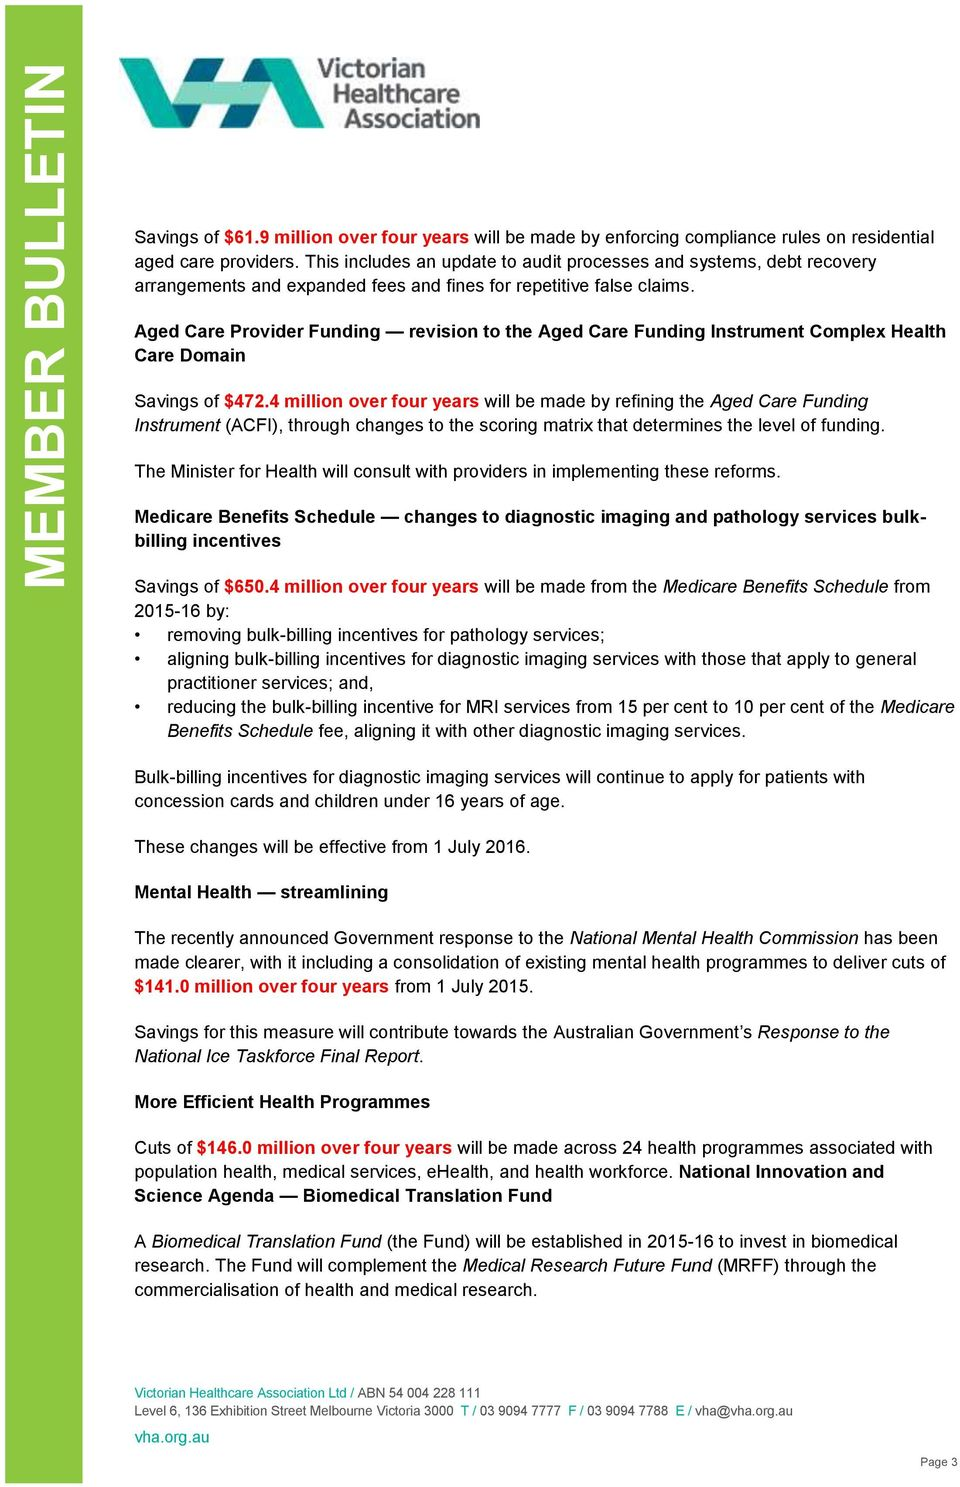 Aged Care Provider Funding revision to the Aged Care Funding Instrument Complex Health Care Domain Savings of $472.